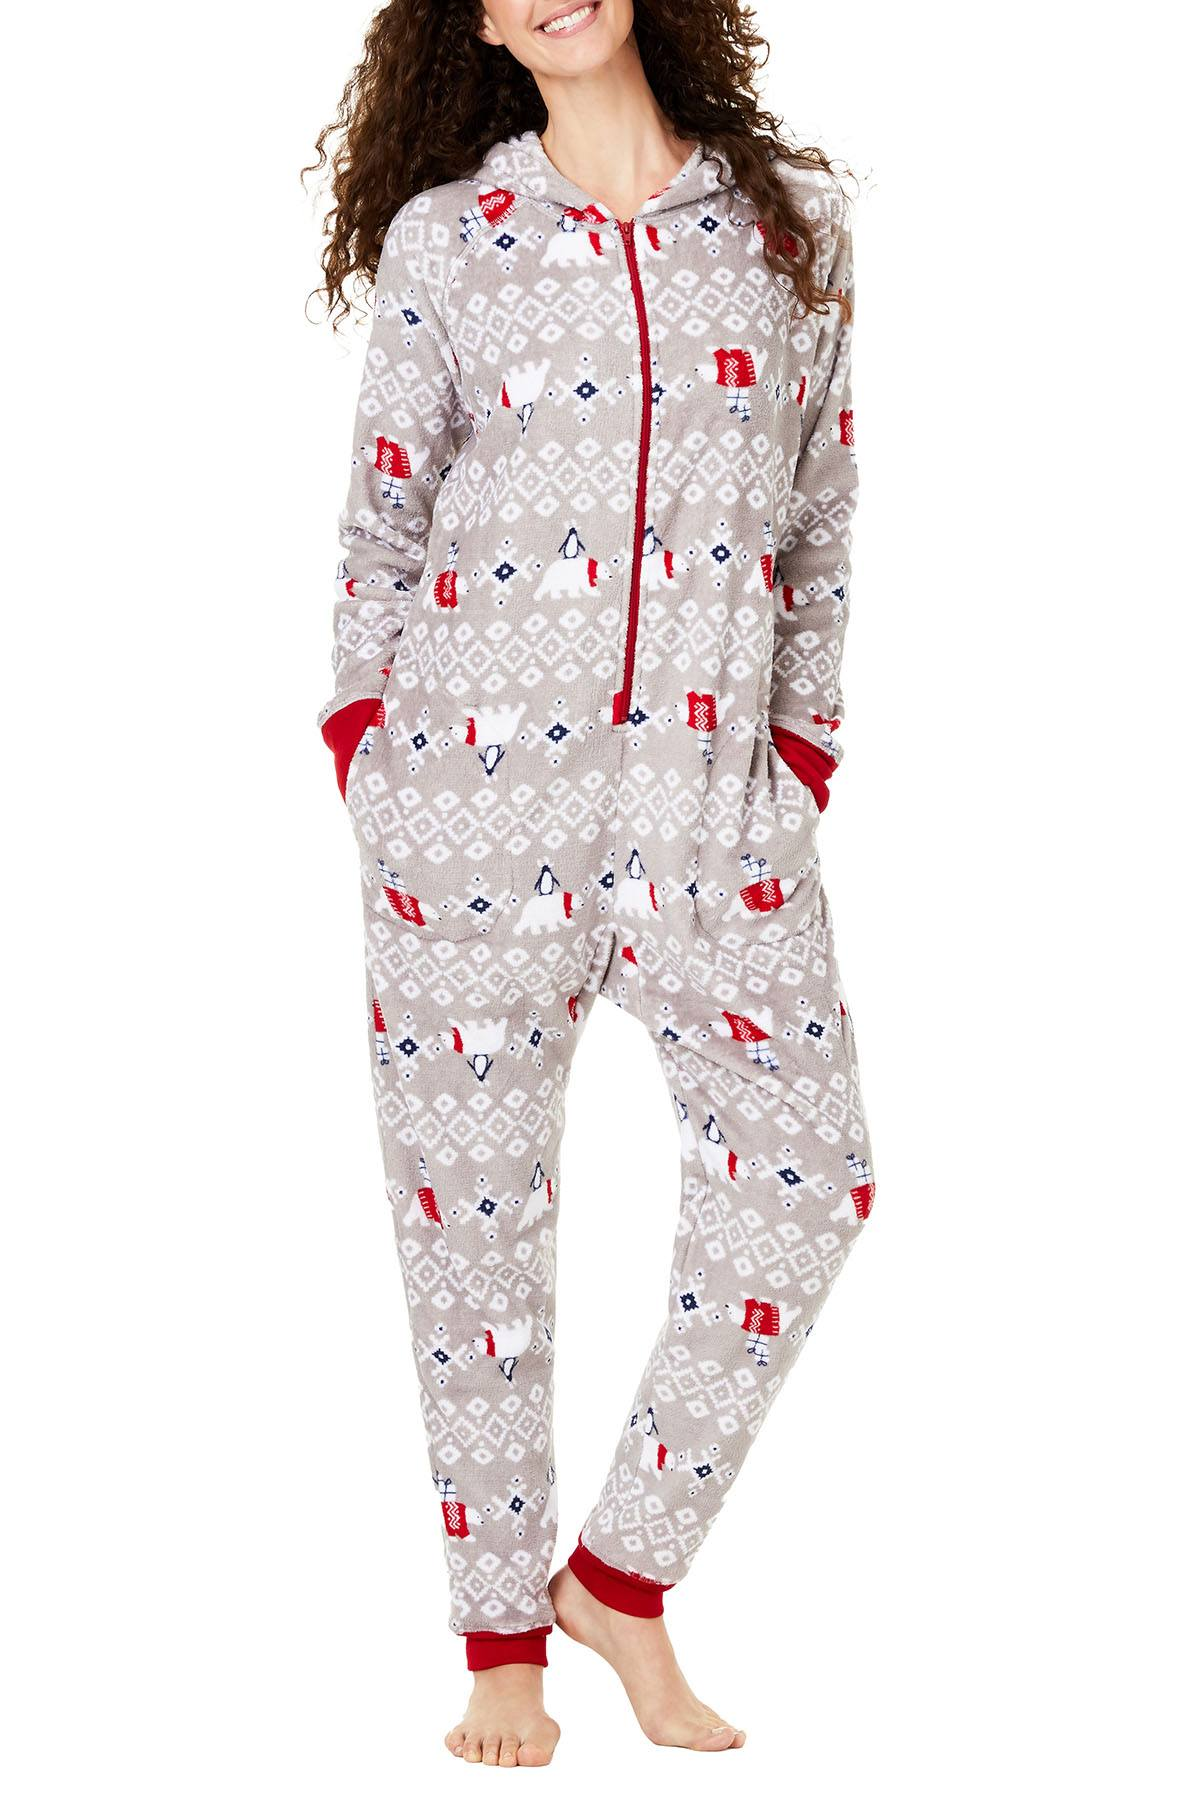 Family PJs Women's Holiday Hooded Onesie in Polar Bear Grey